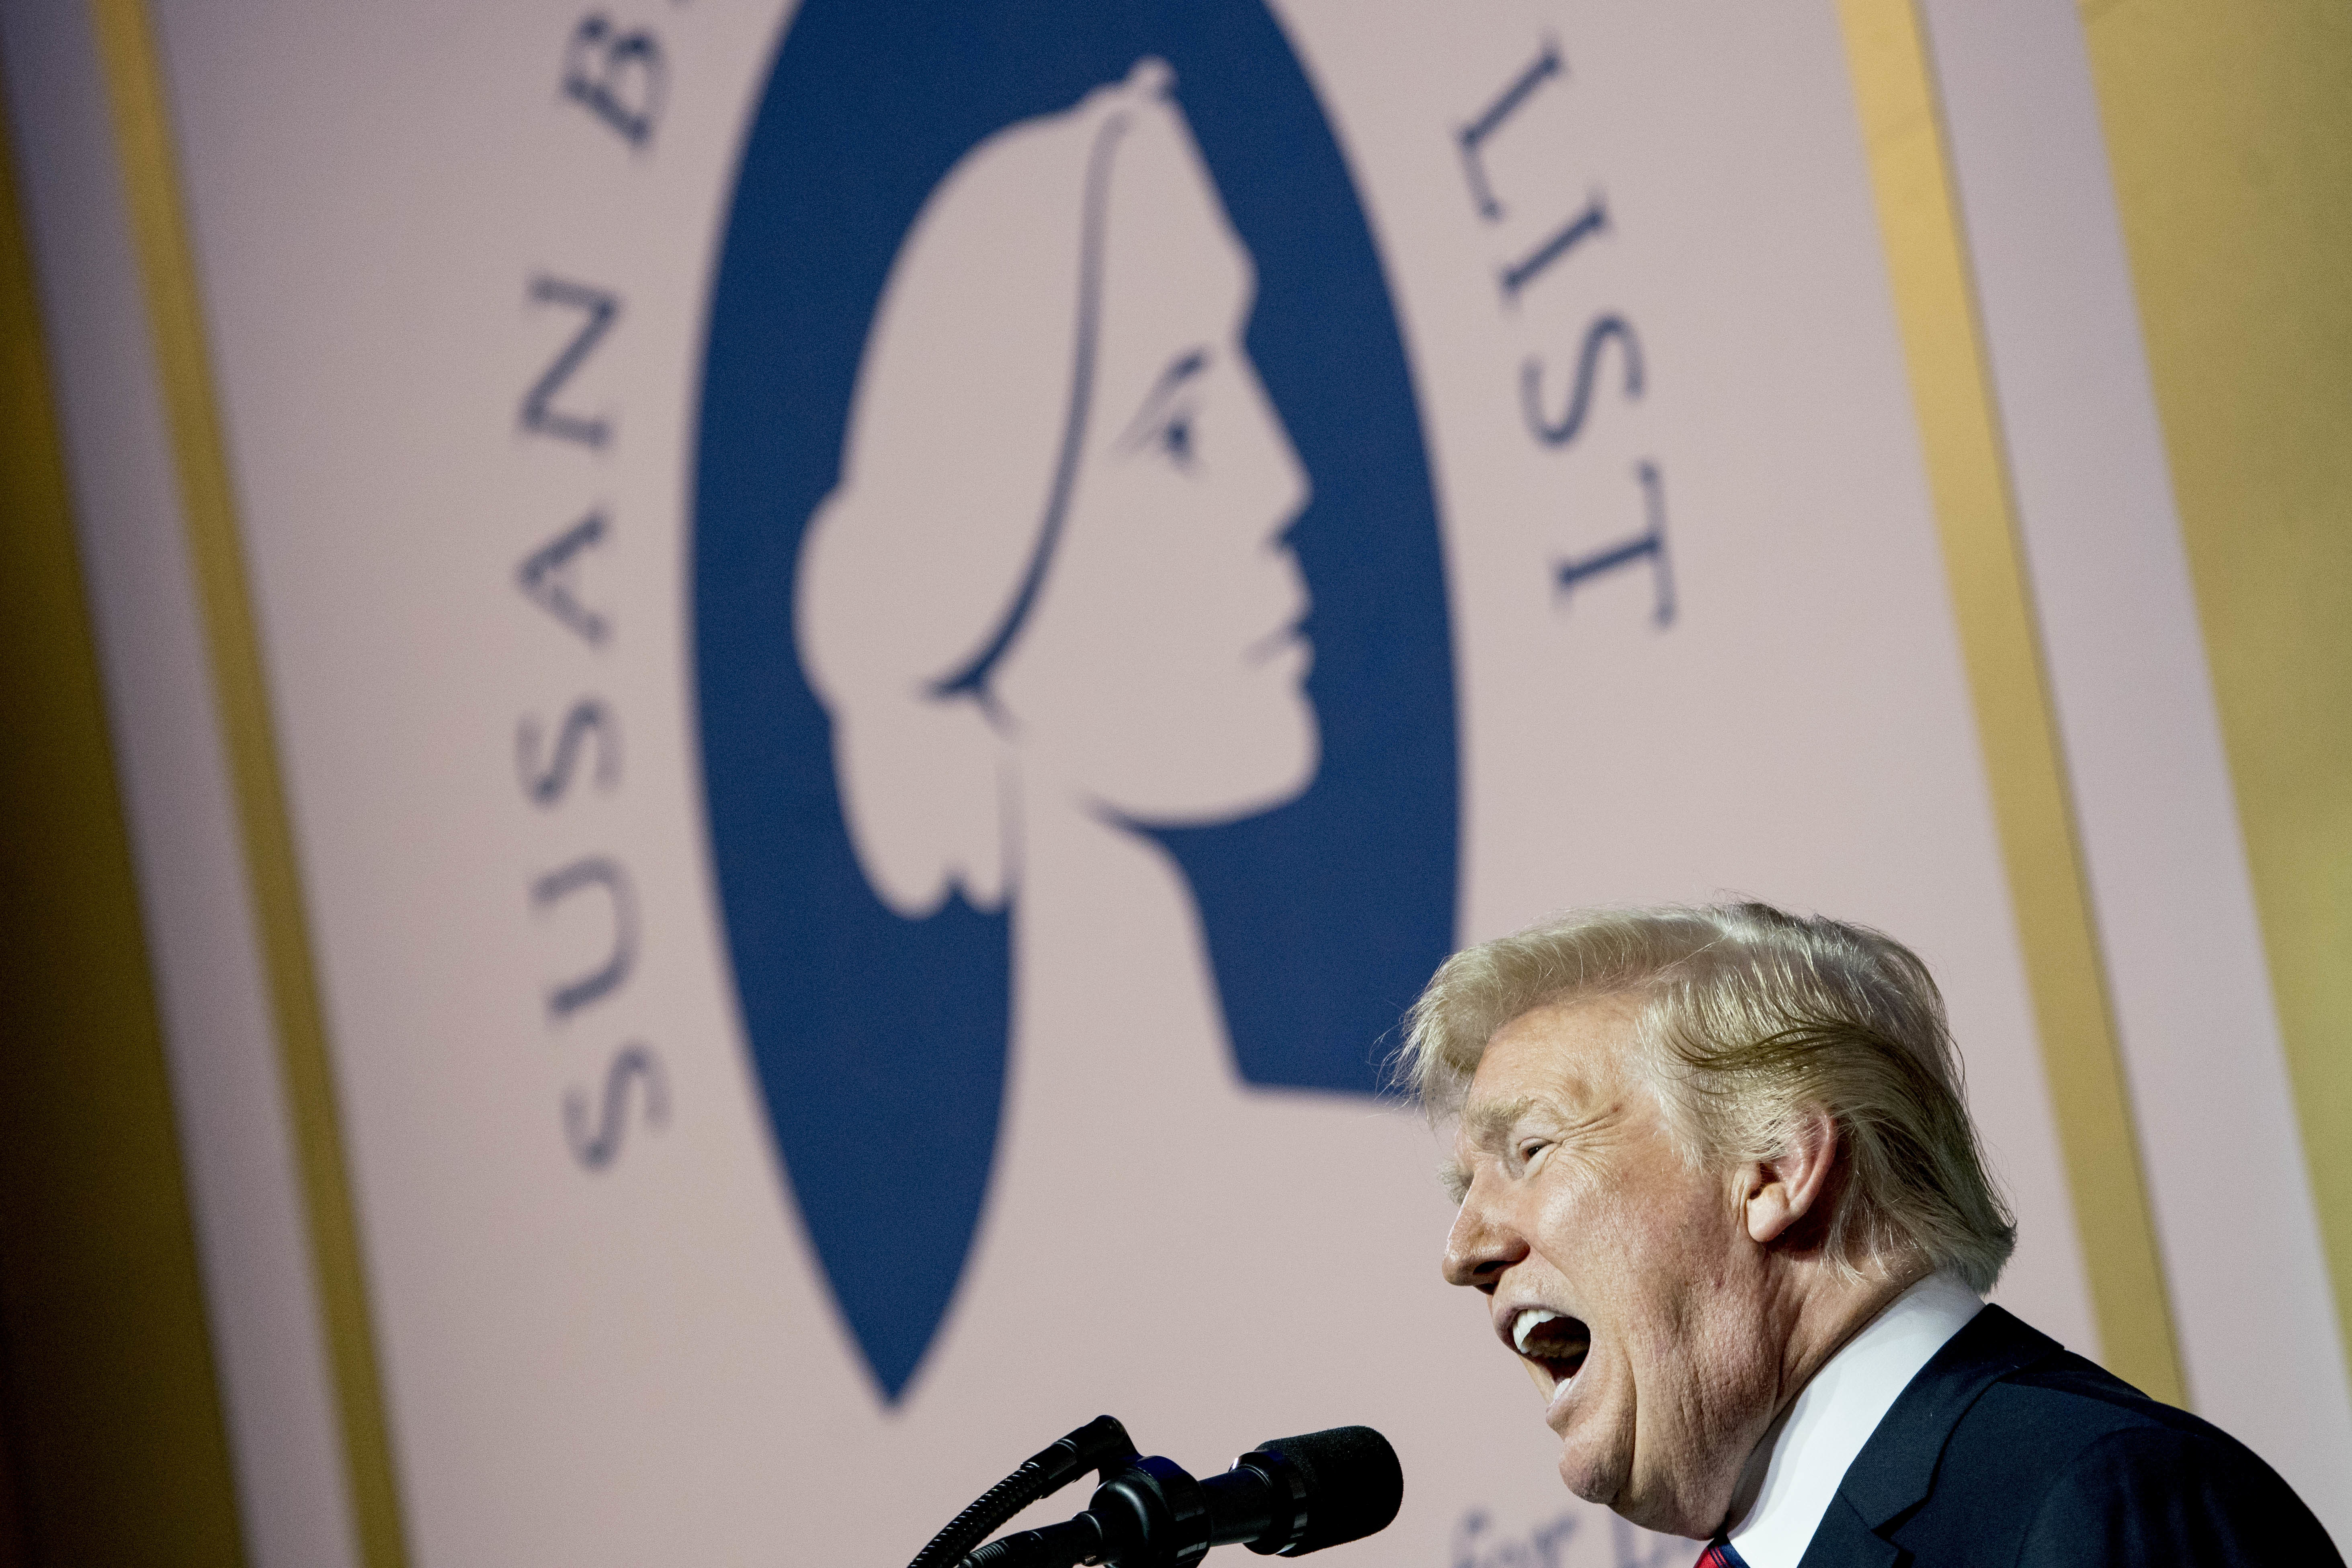 President Donald Trump speaks at the Susan B. Anthony List 11th Annual Campaign for Life Gala at the National Building Museum, Tuesday, May 22, 2018, in Washington. (AP Photo/Andrew Harnik)